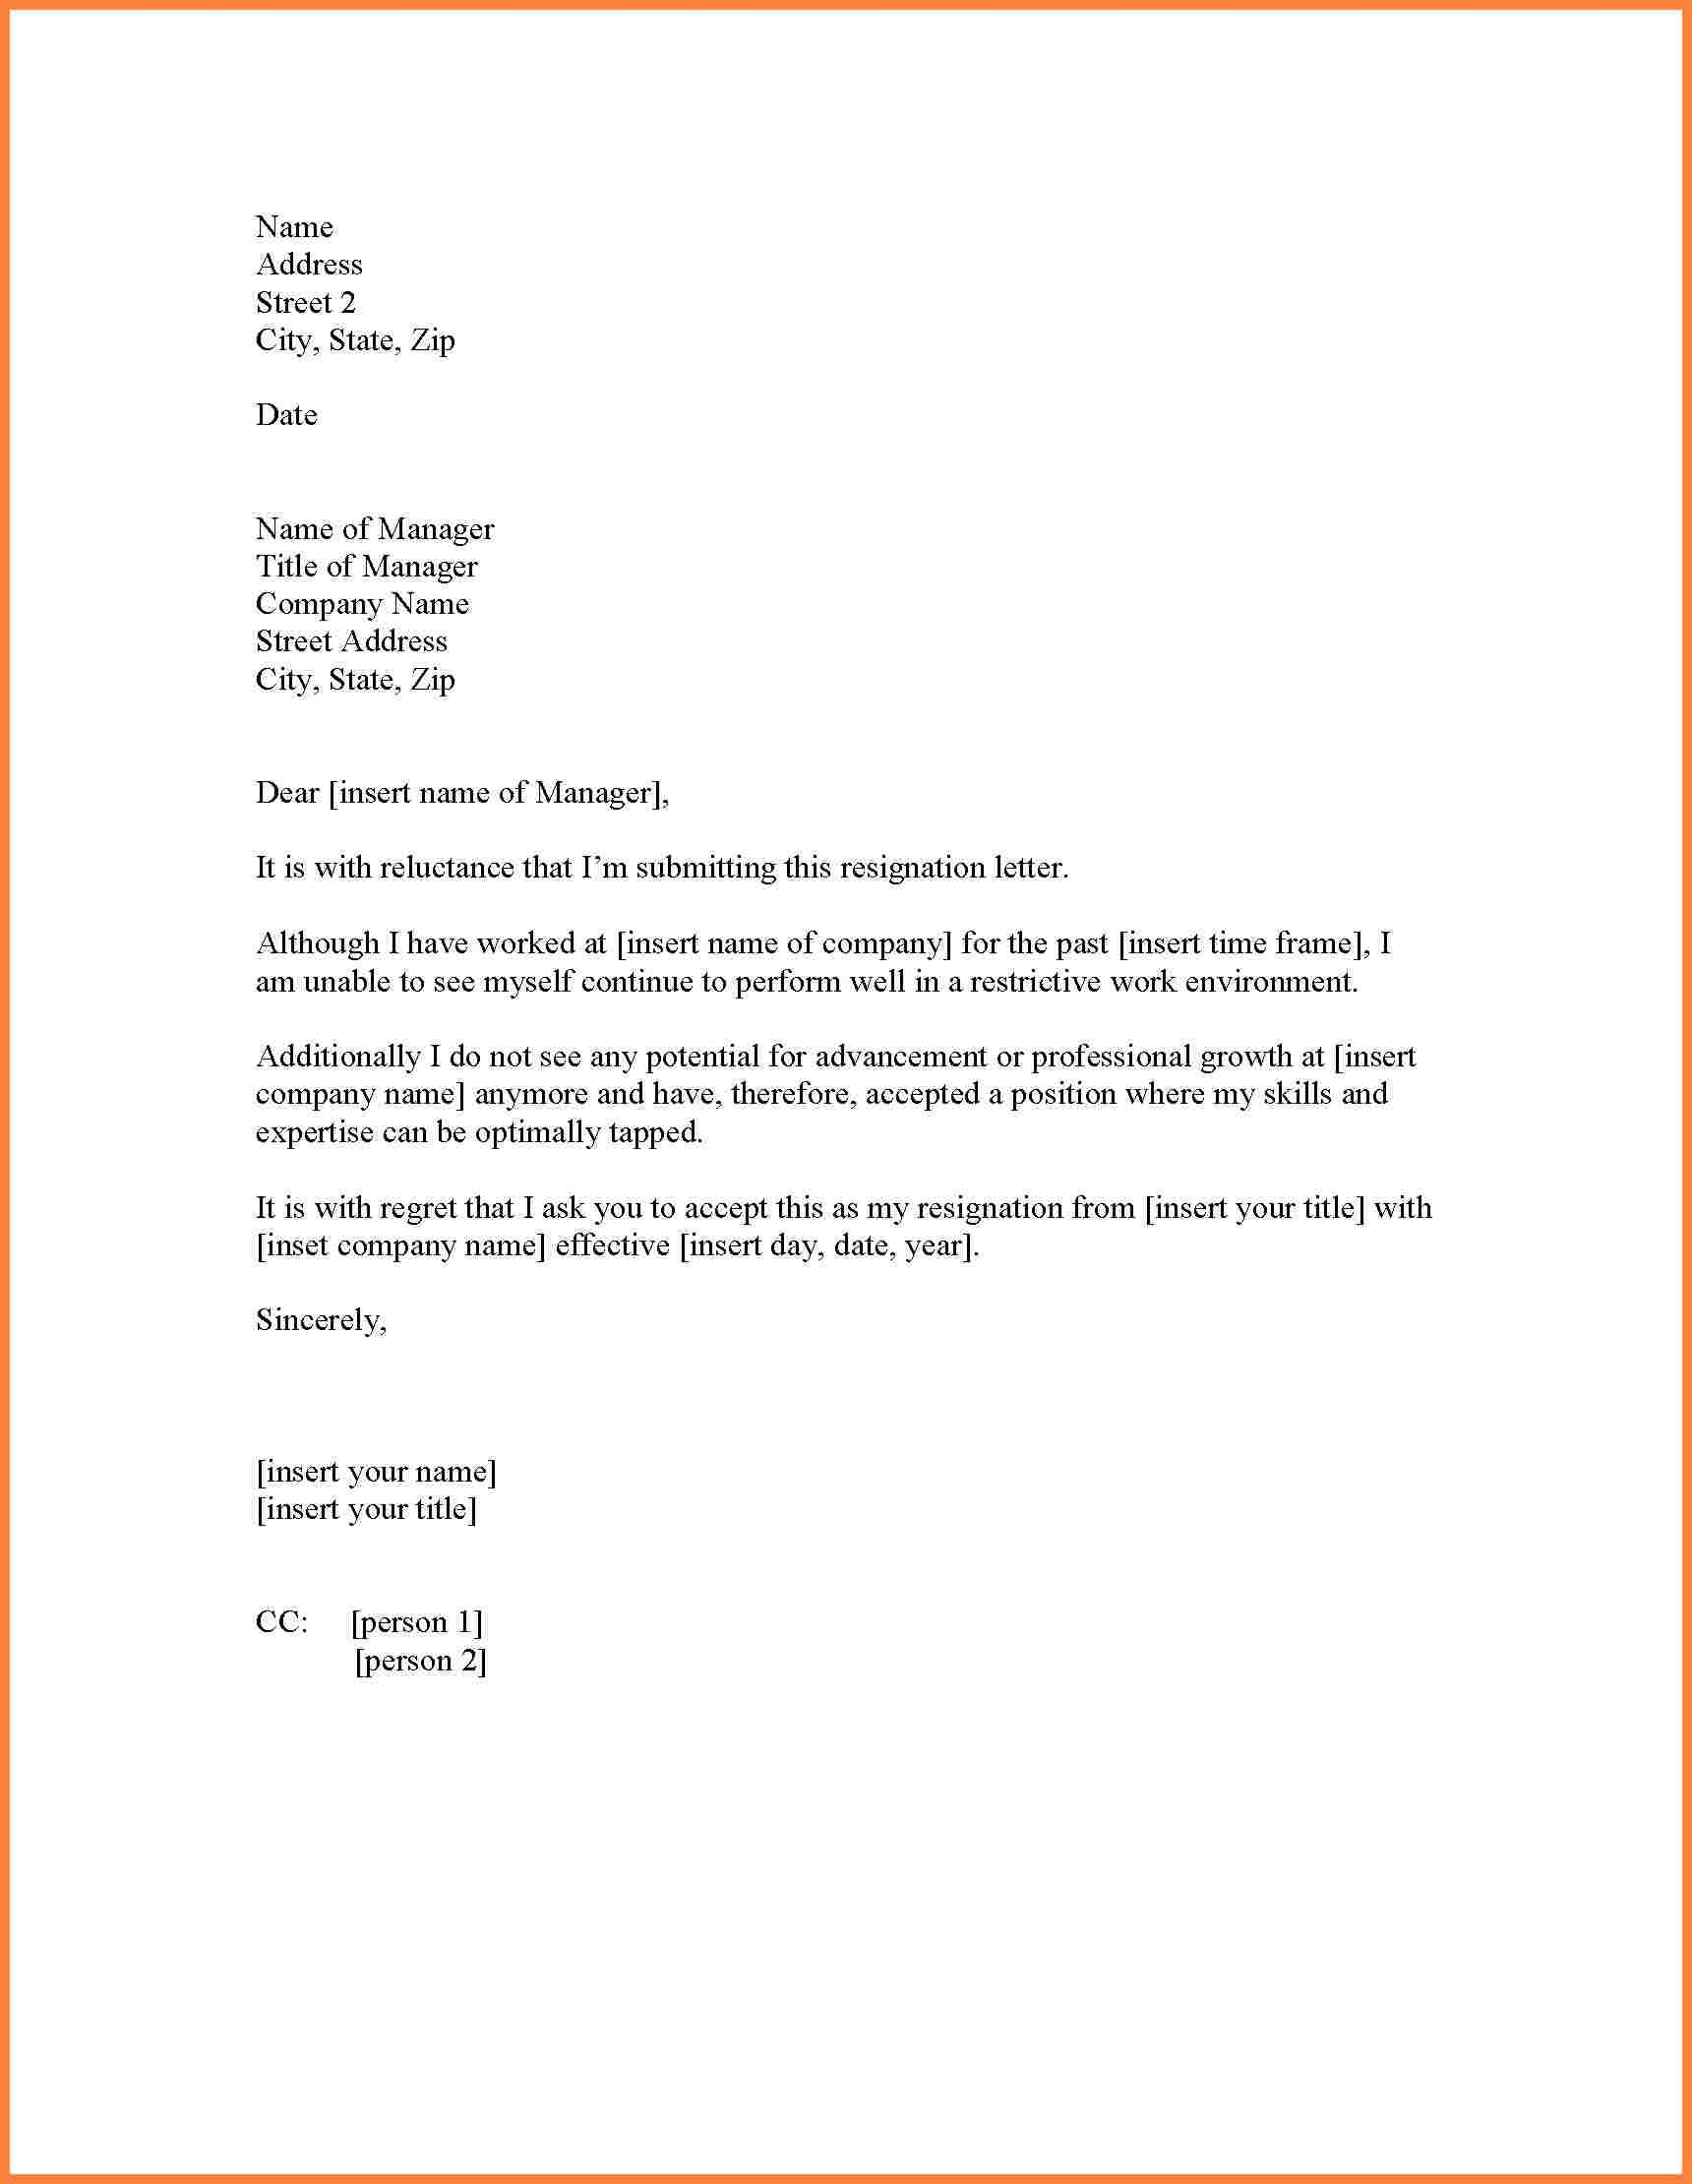 Immediate resignation letter template samples letter templates immediate resignation letter template best resignation letter for personal reasons resignation letter for thecheapjerseys Gallery